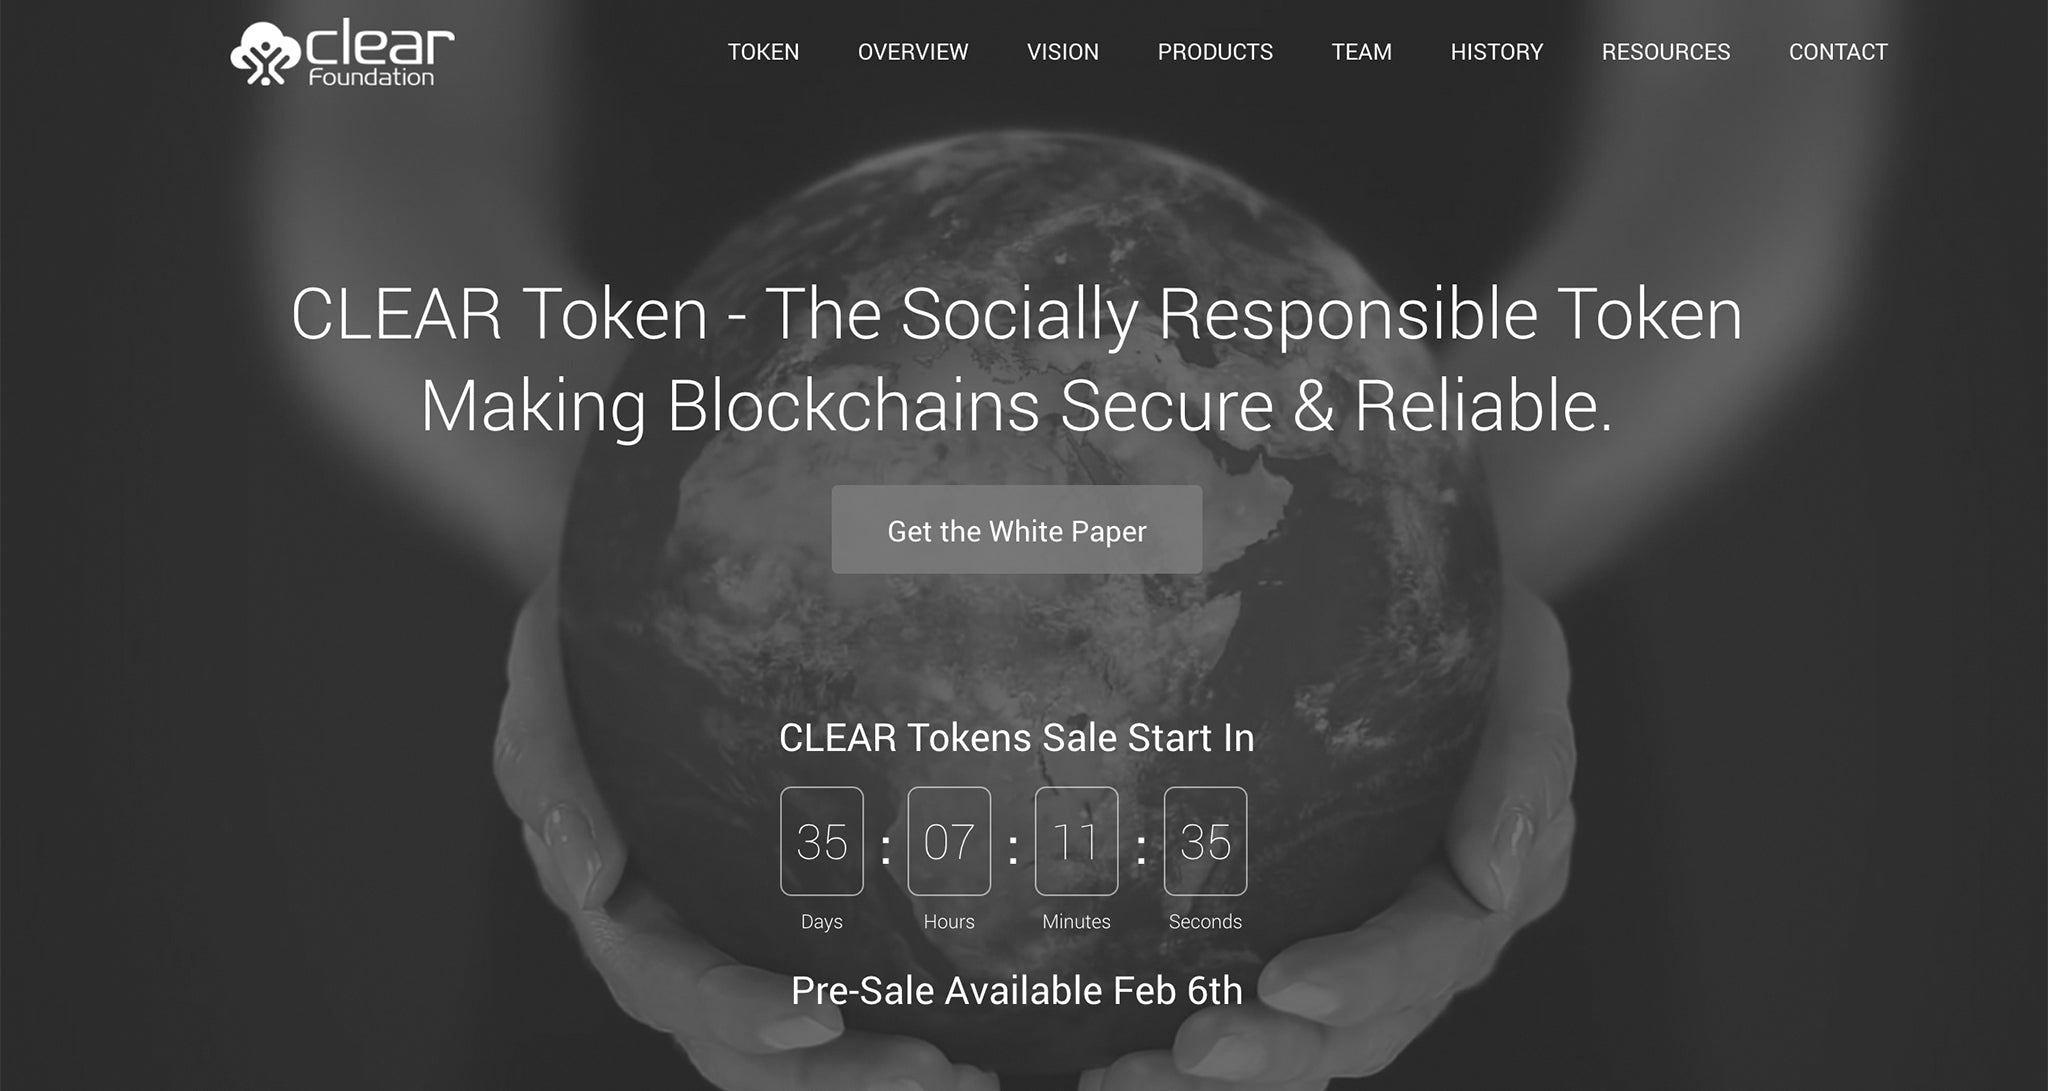 ClearFoundation Announces $1 Billion (NZD) CLEAR Token 5-Year Offering of Socially Responsible Utility Tokens